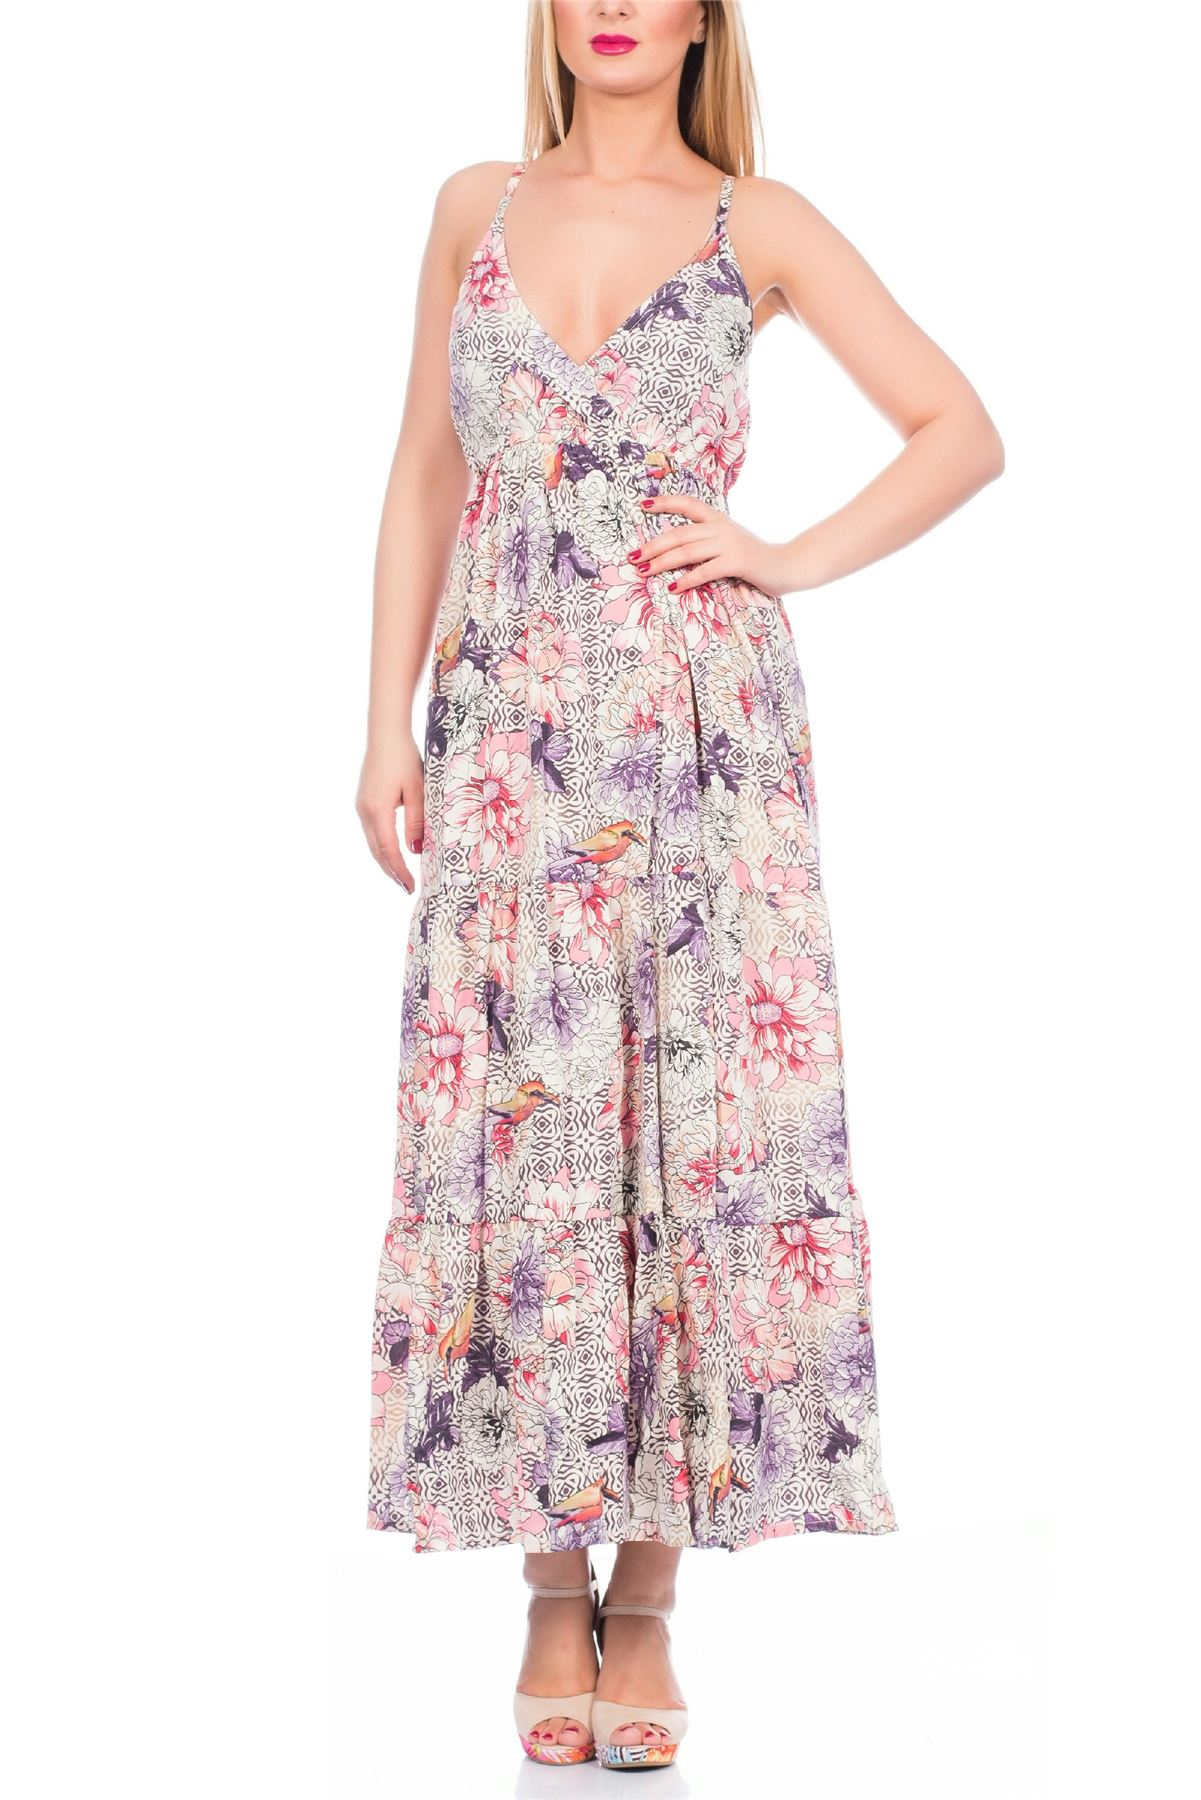 Free shipping and returns on Women's Cotton & Cotton Blend Dresses at 440v.cf